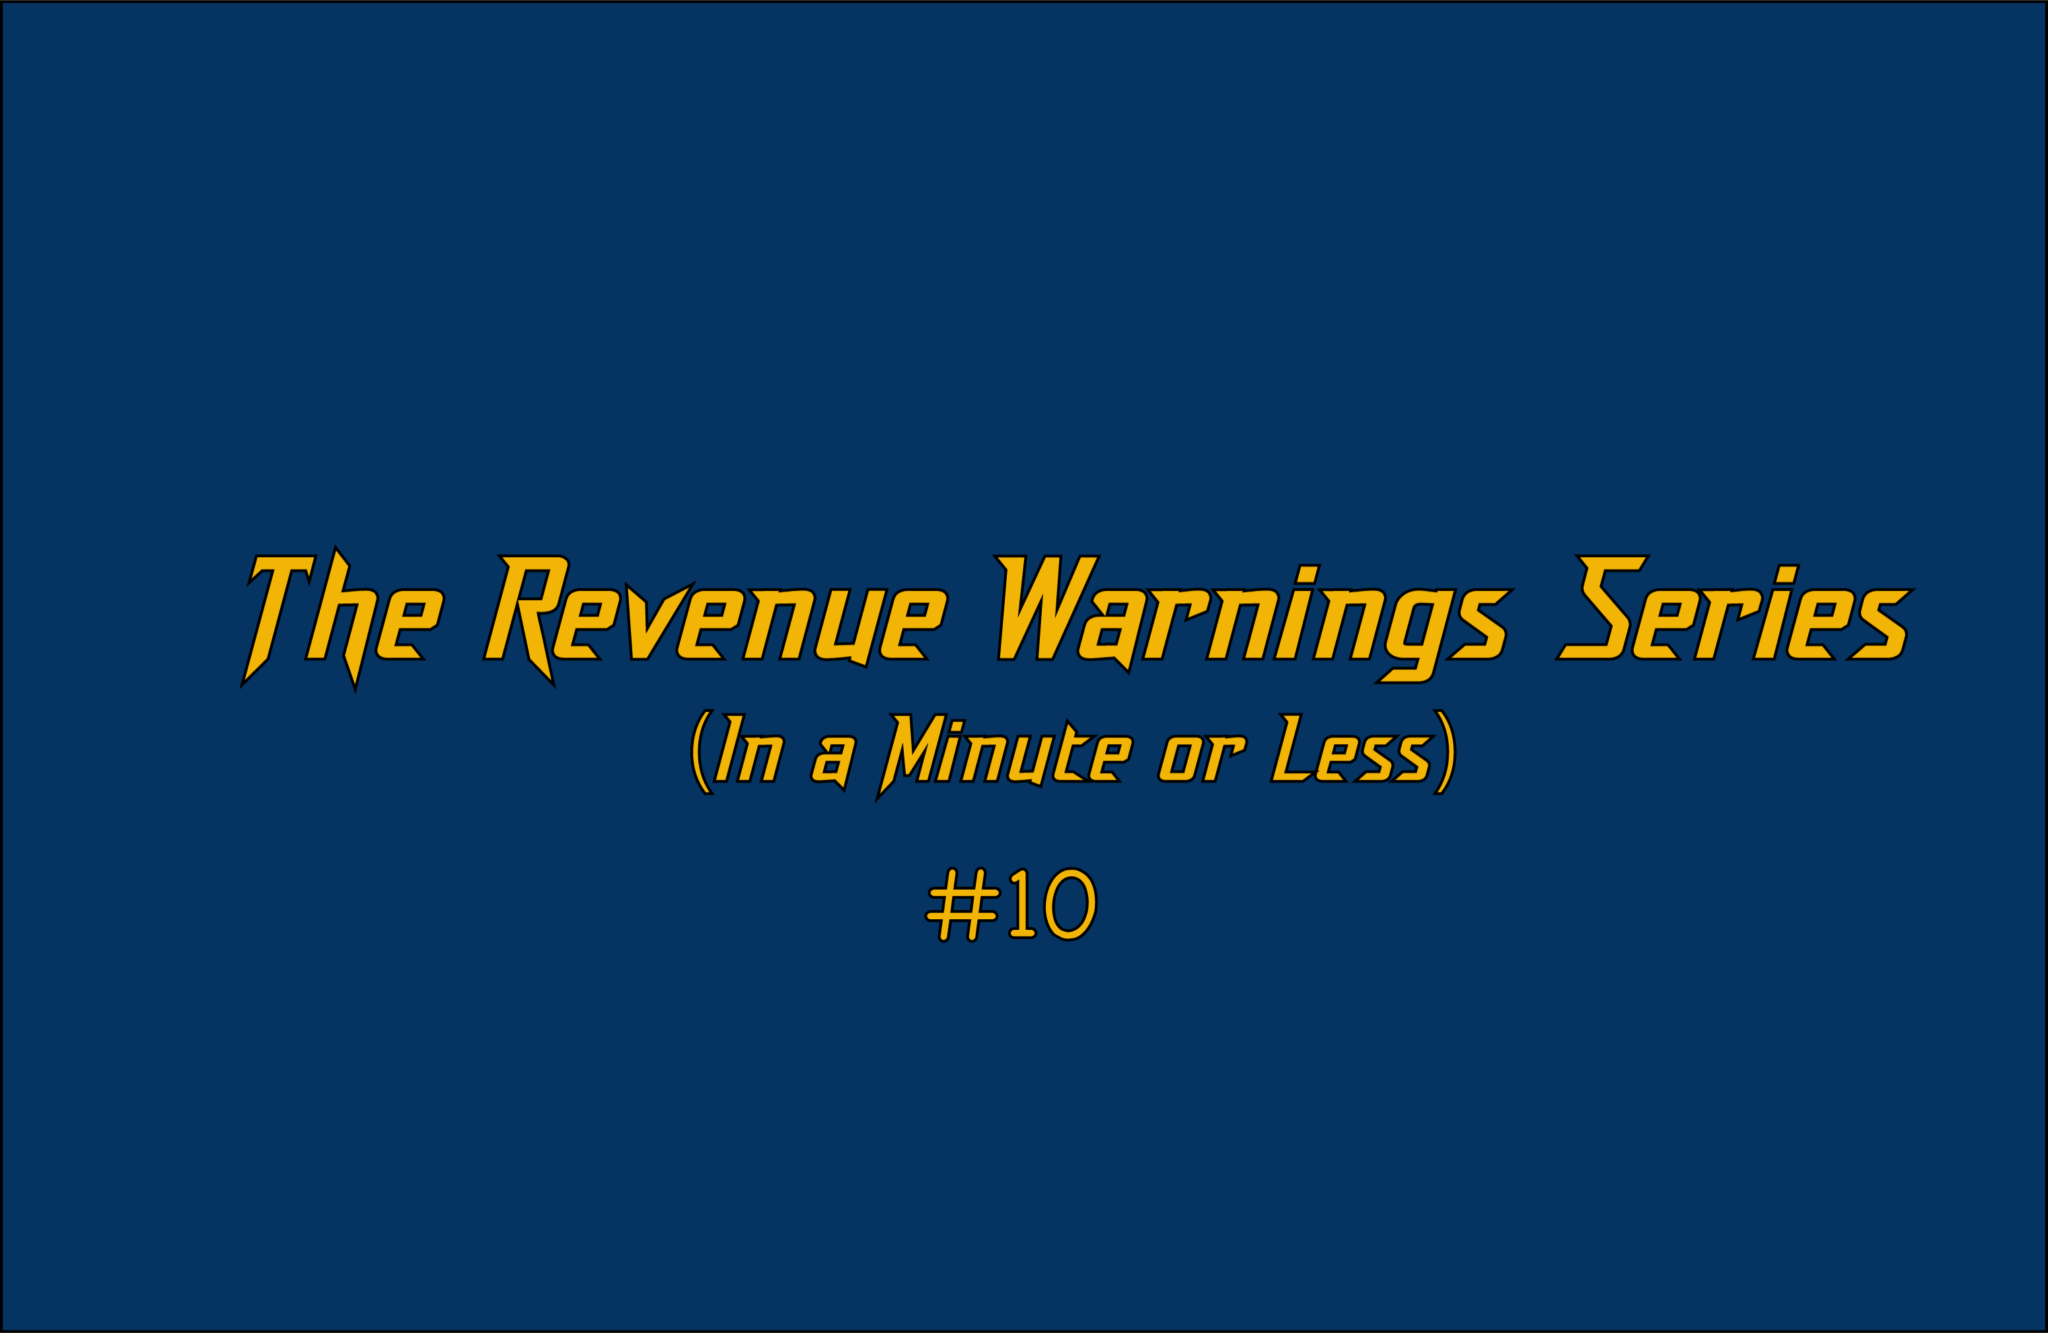 Revenue Warning #10: Buyers Don't Care About Your Mission Vision Value Statements